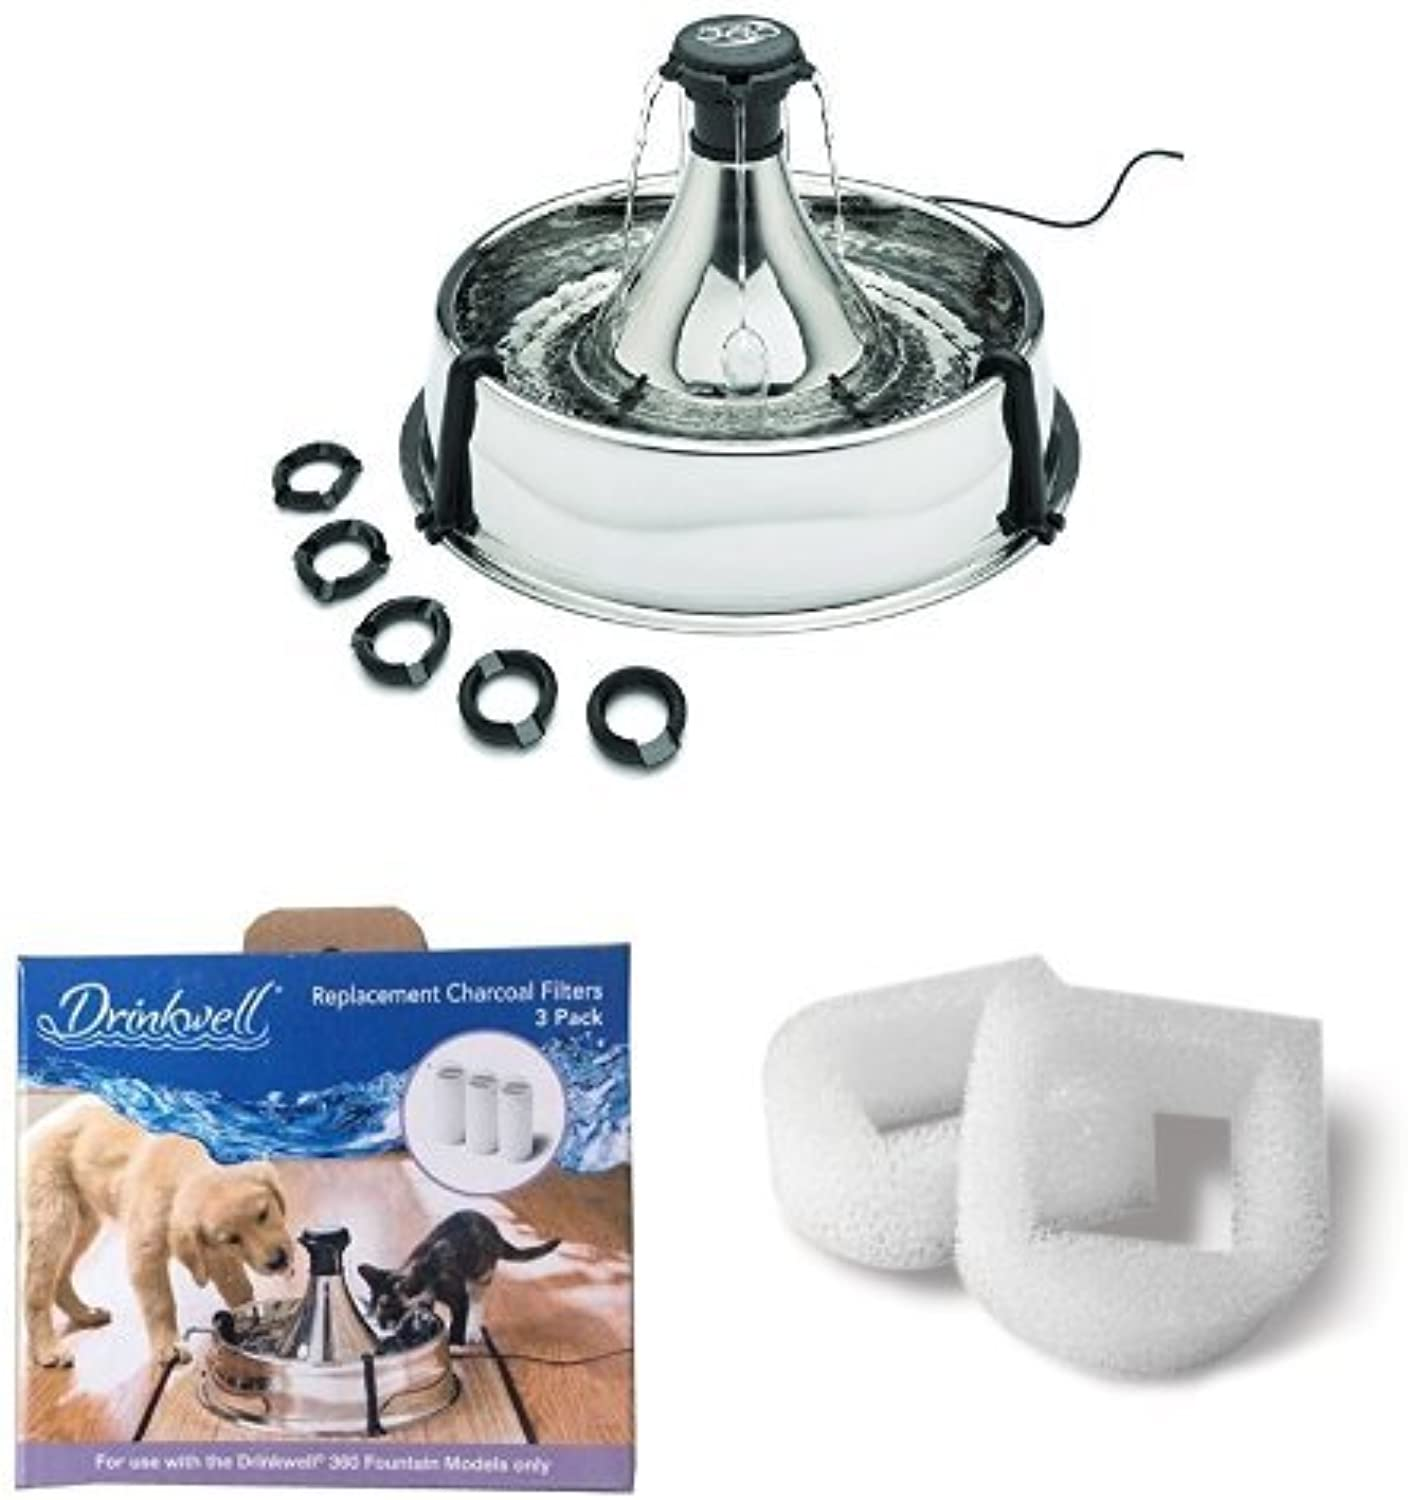 PetSafe 360 Fountain Pet Drinking Well, Stainless + Radio Systems PAC1914356 Drinkwell by PetSafe360 FTN Repl Filters 3 Pack + Drinkwell PAC0013711 Foam Filter 360 Bundle